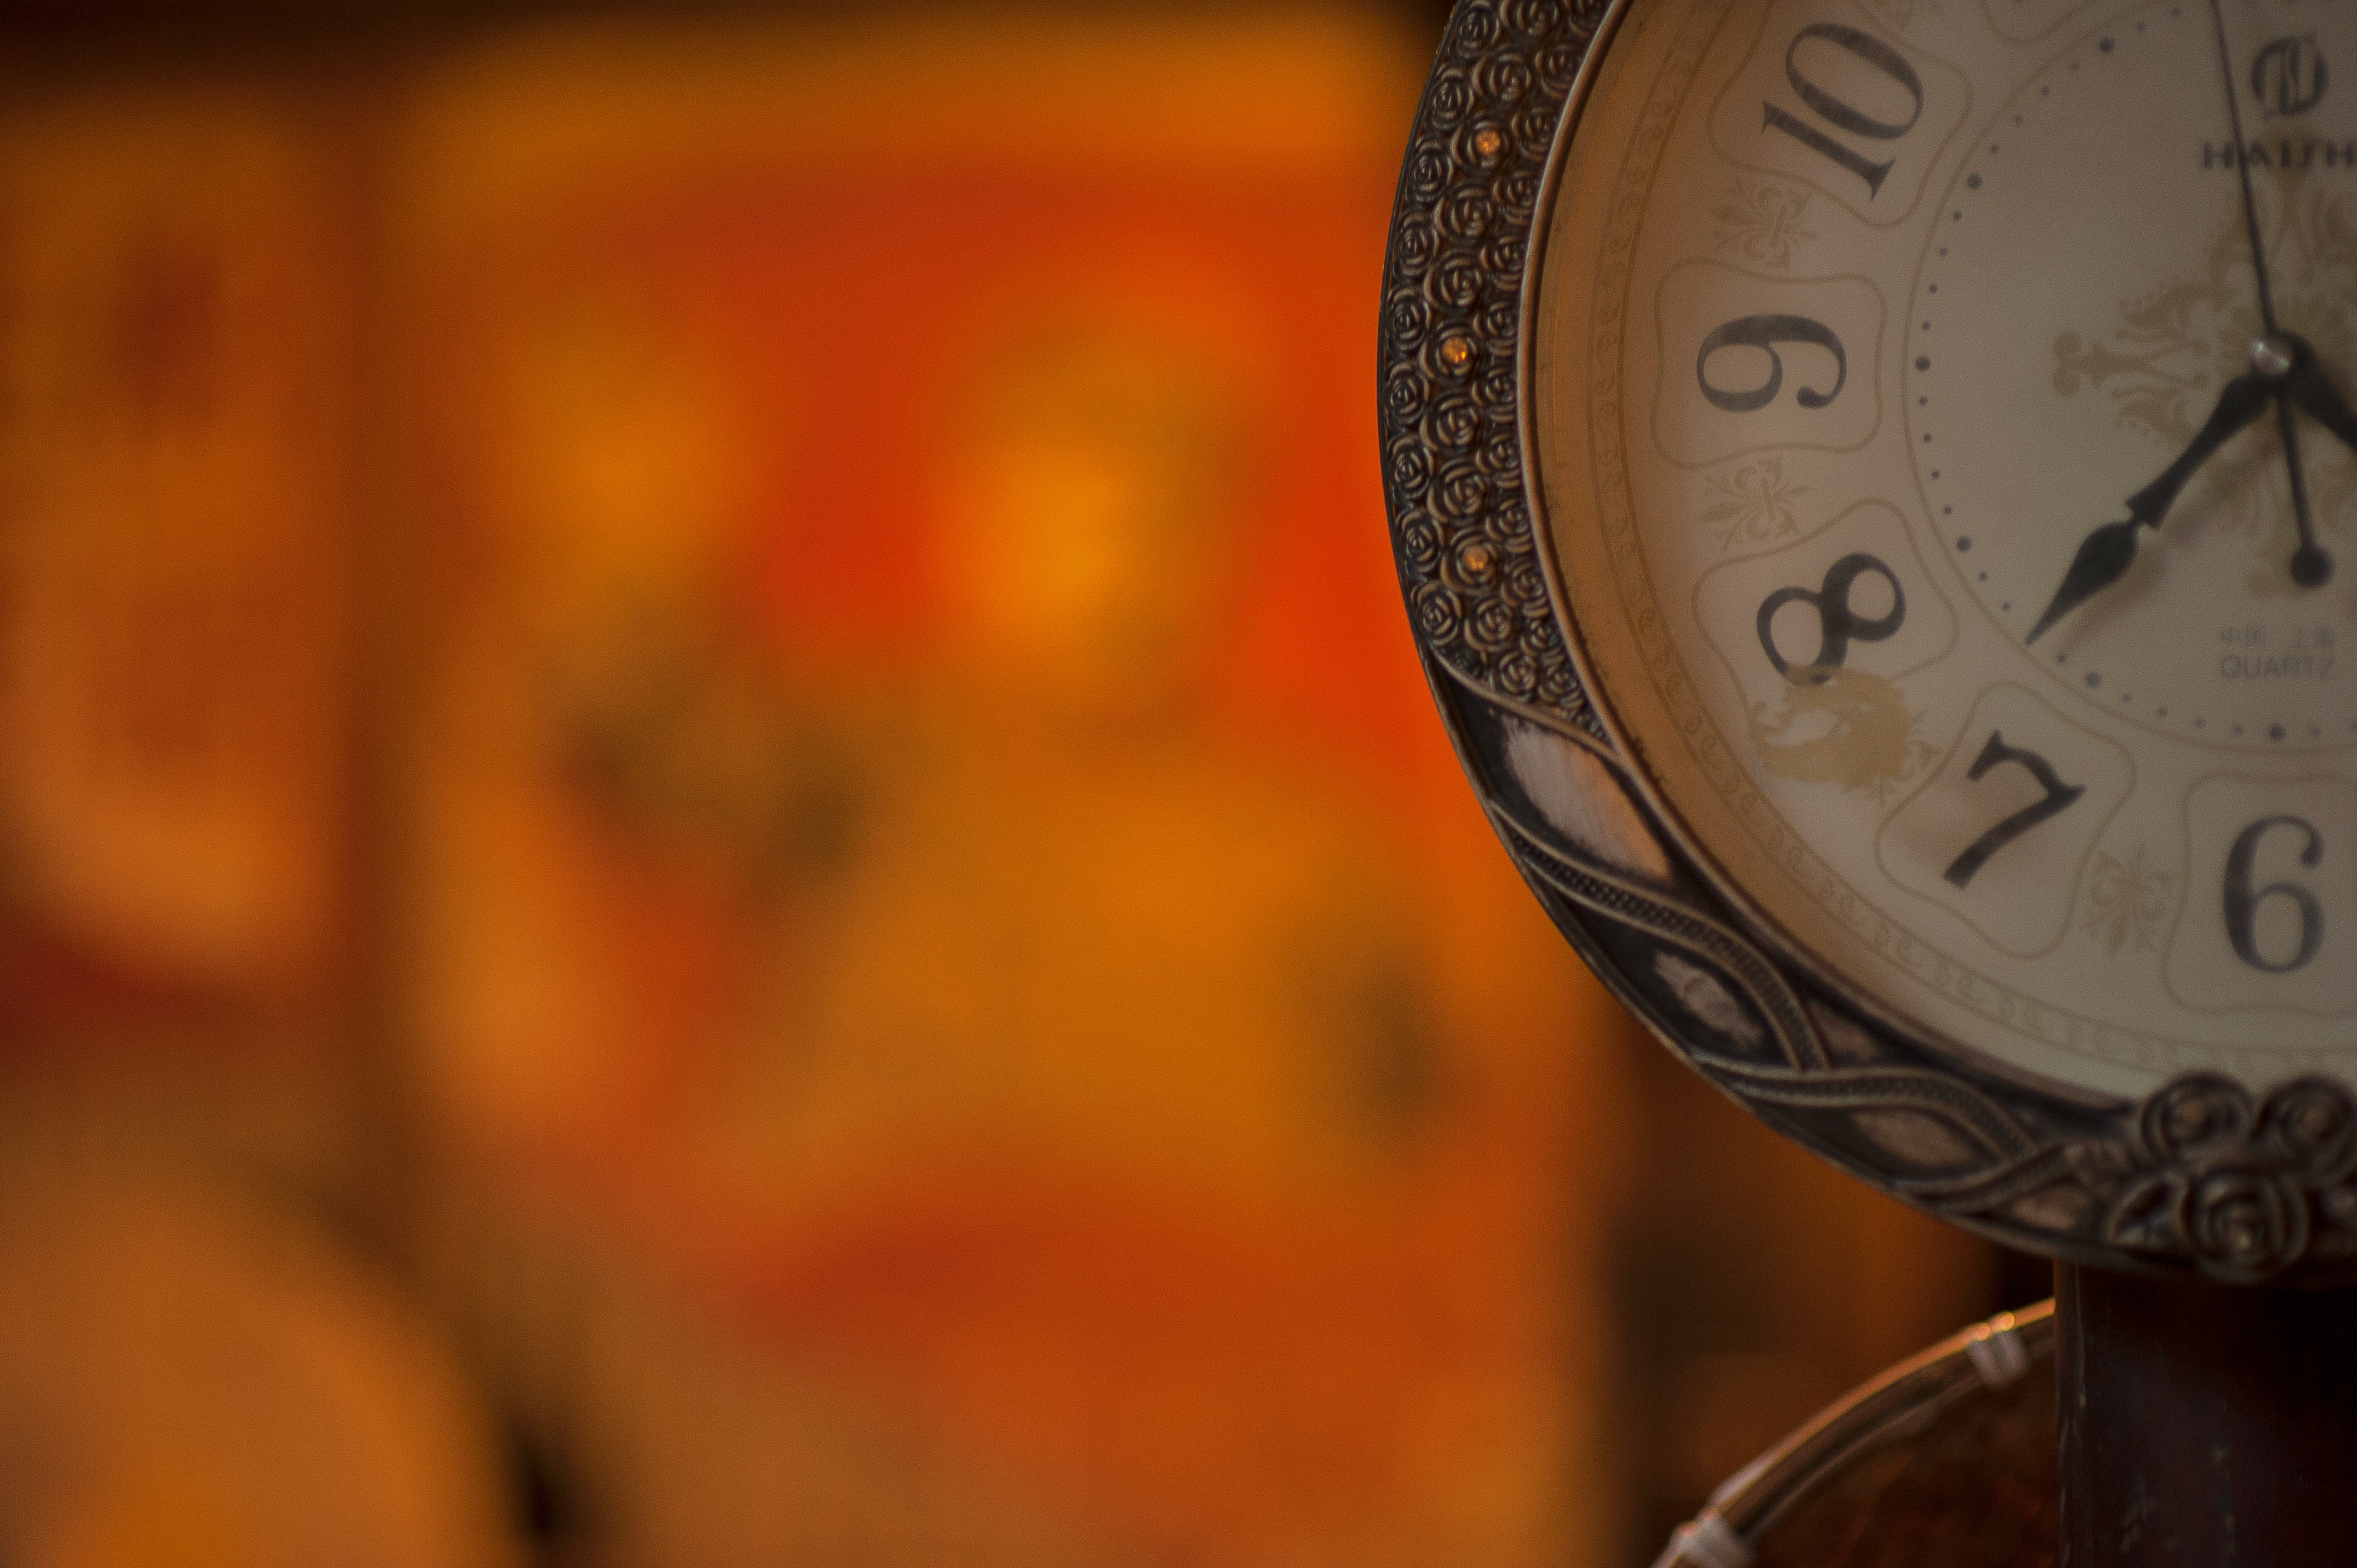 Shallow Focus Photo of Analog Watch